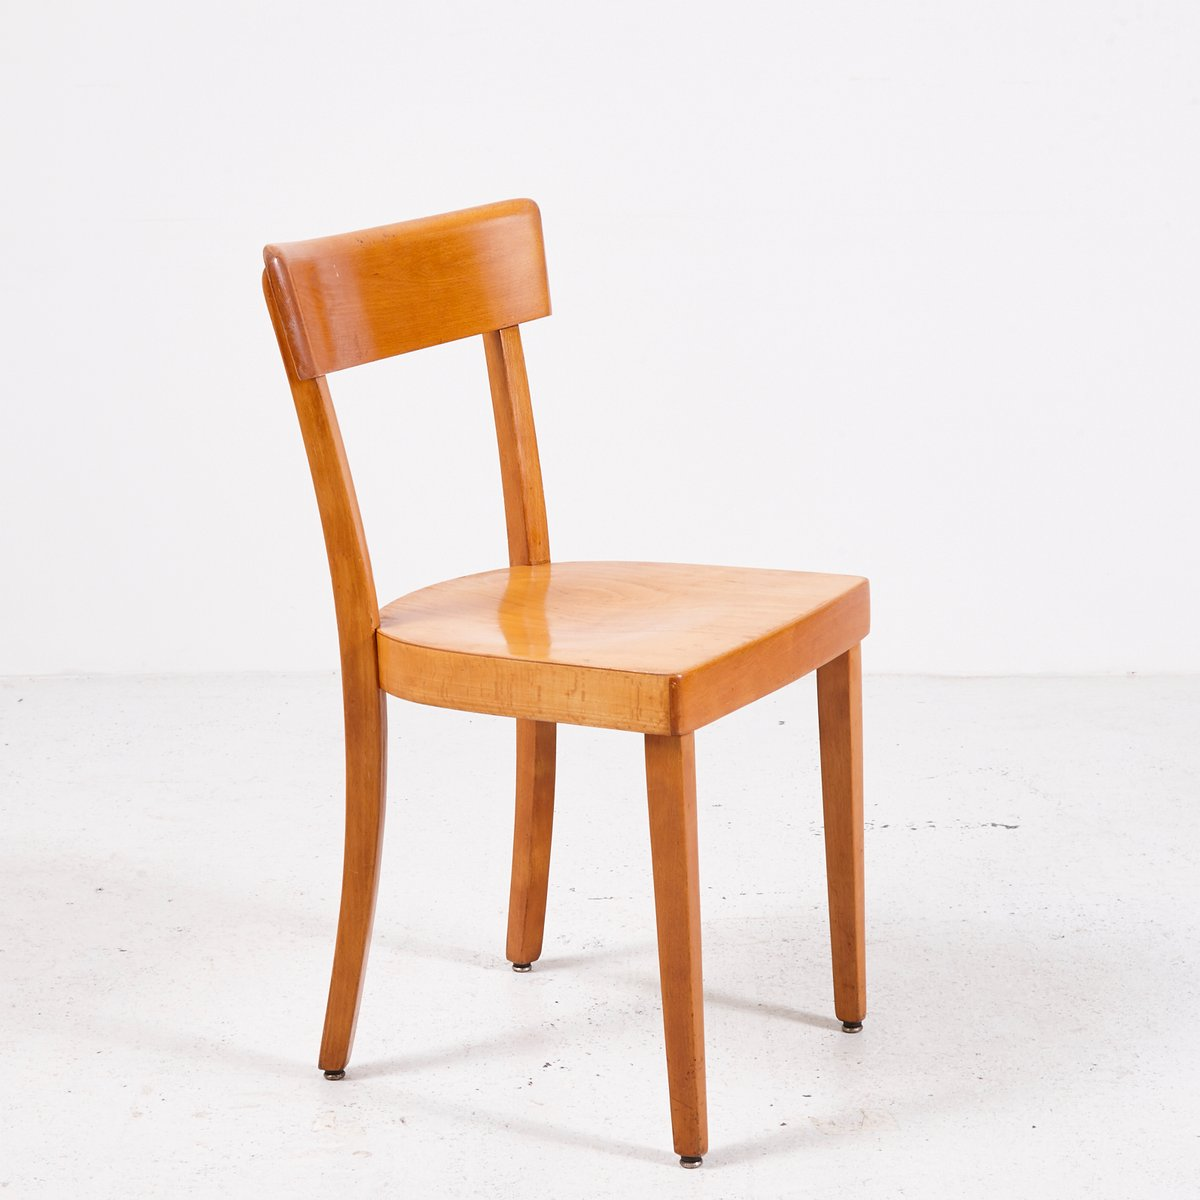 Vintage viennese wooden chair from wiesner hager for sale for Wooden chair